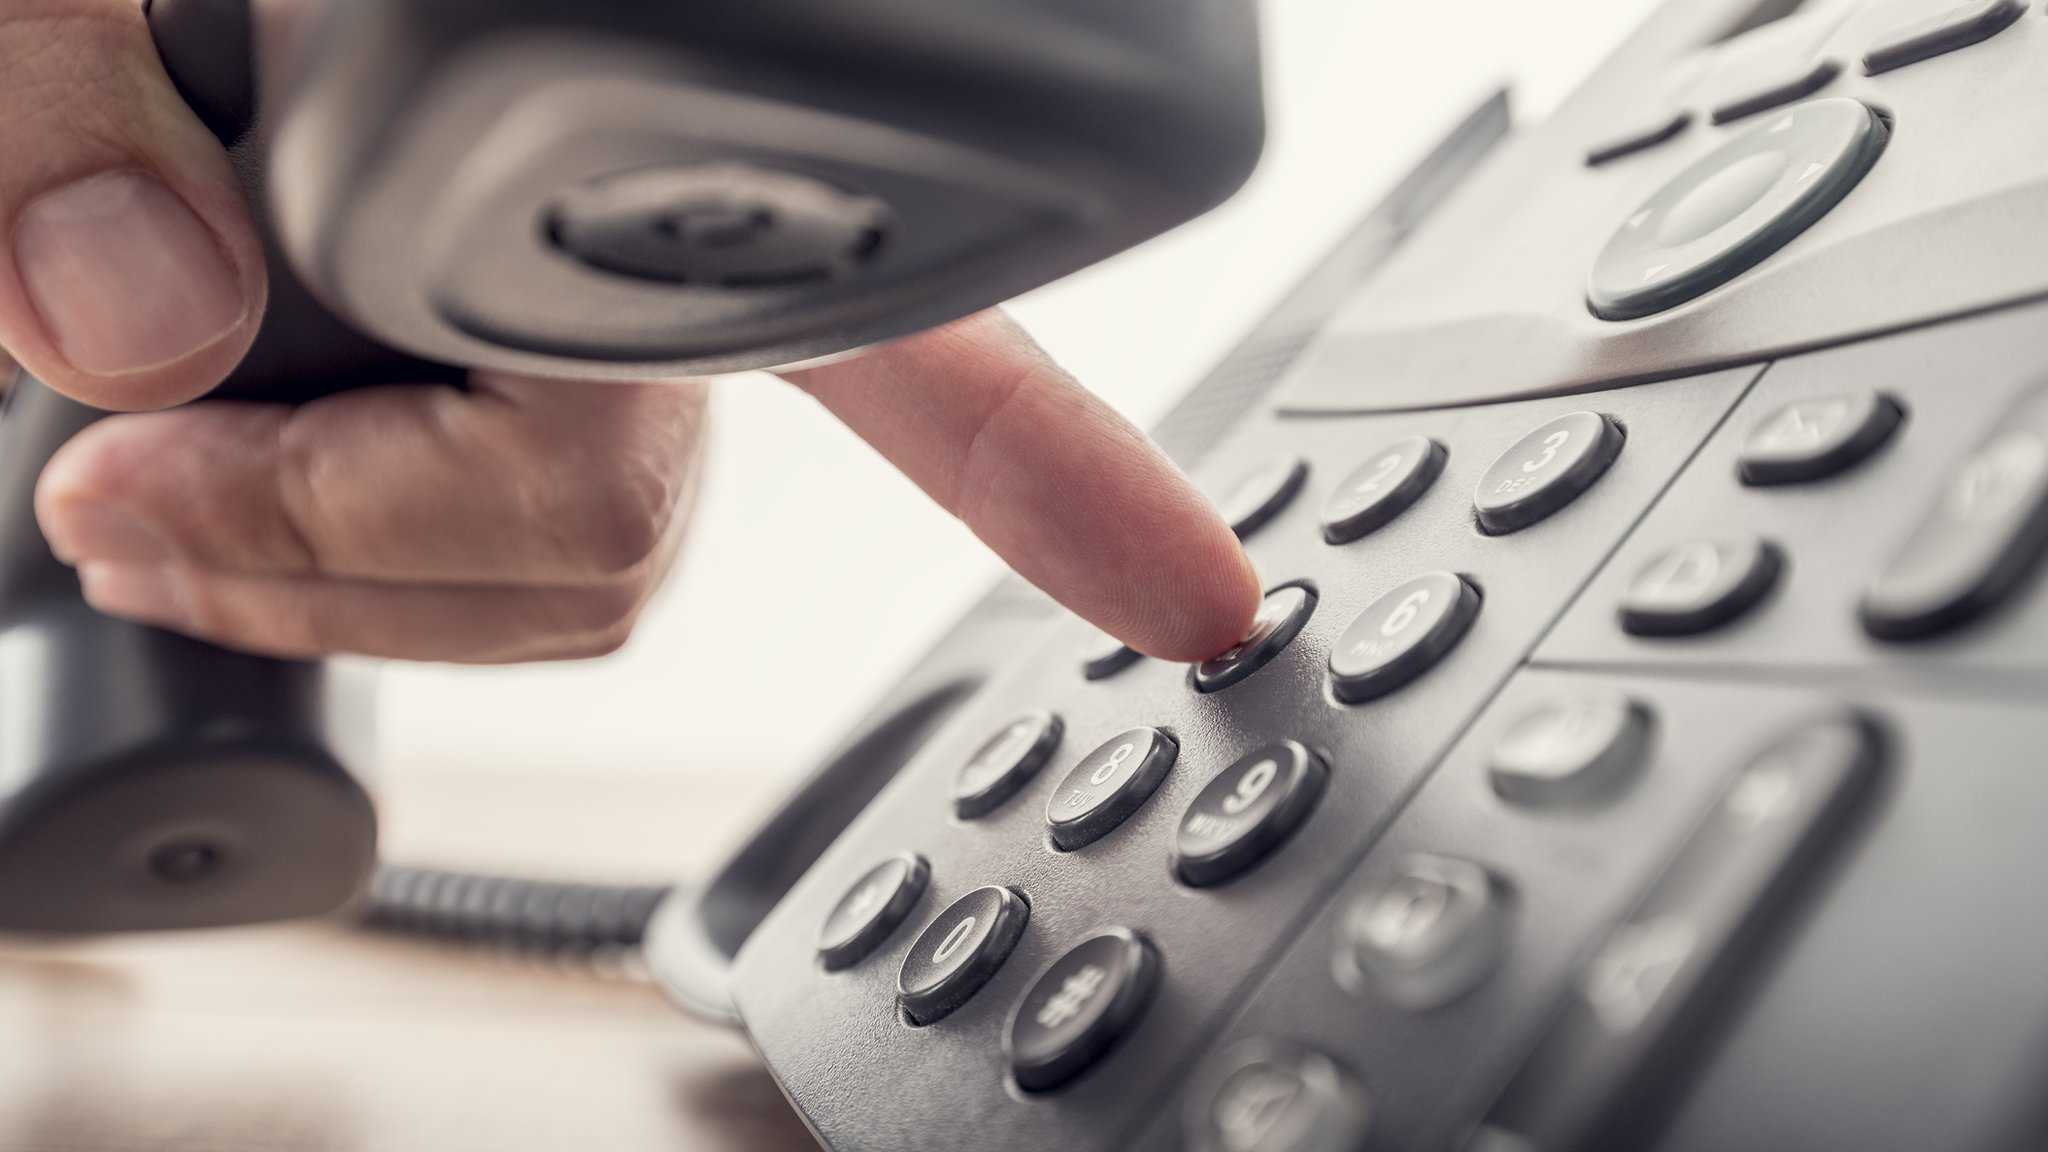 Nuisance calls: BT records more than 31 million in one week